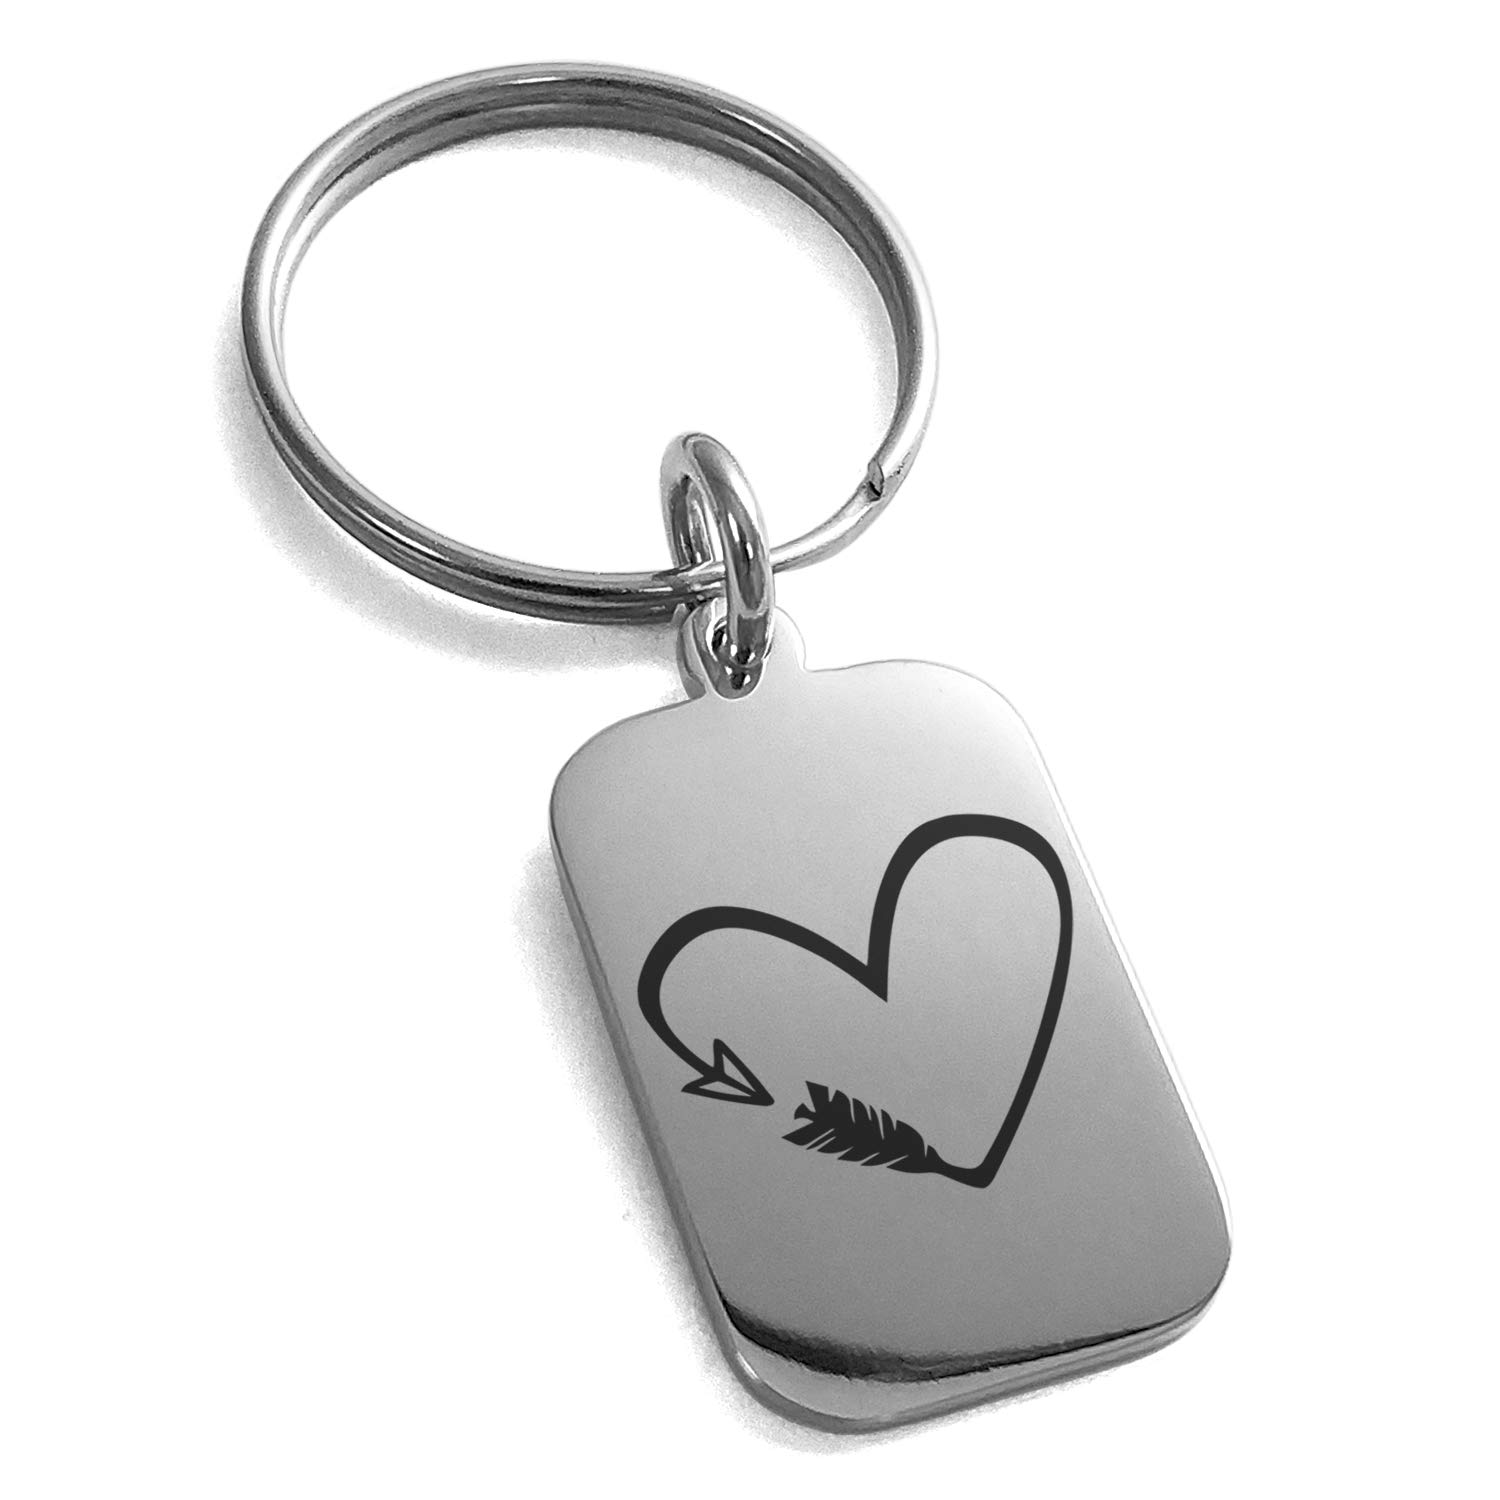 Tioneer Stainless Steel Love Arrow Heart Engraved Small Rectangle Dog Tag Charm Keychain Keyring